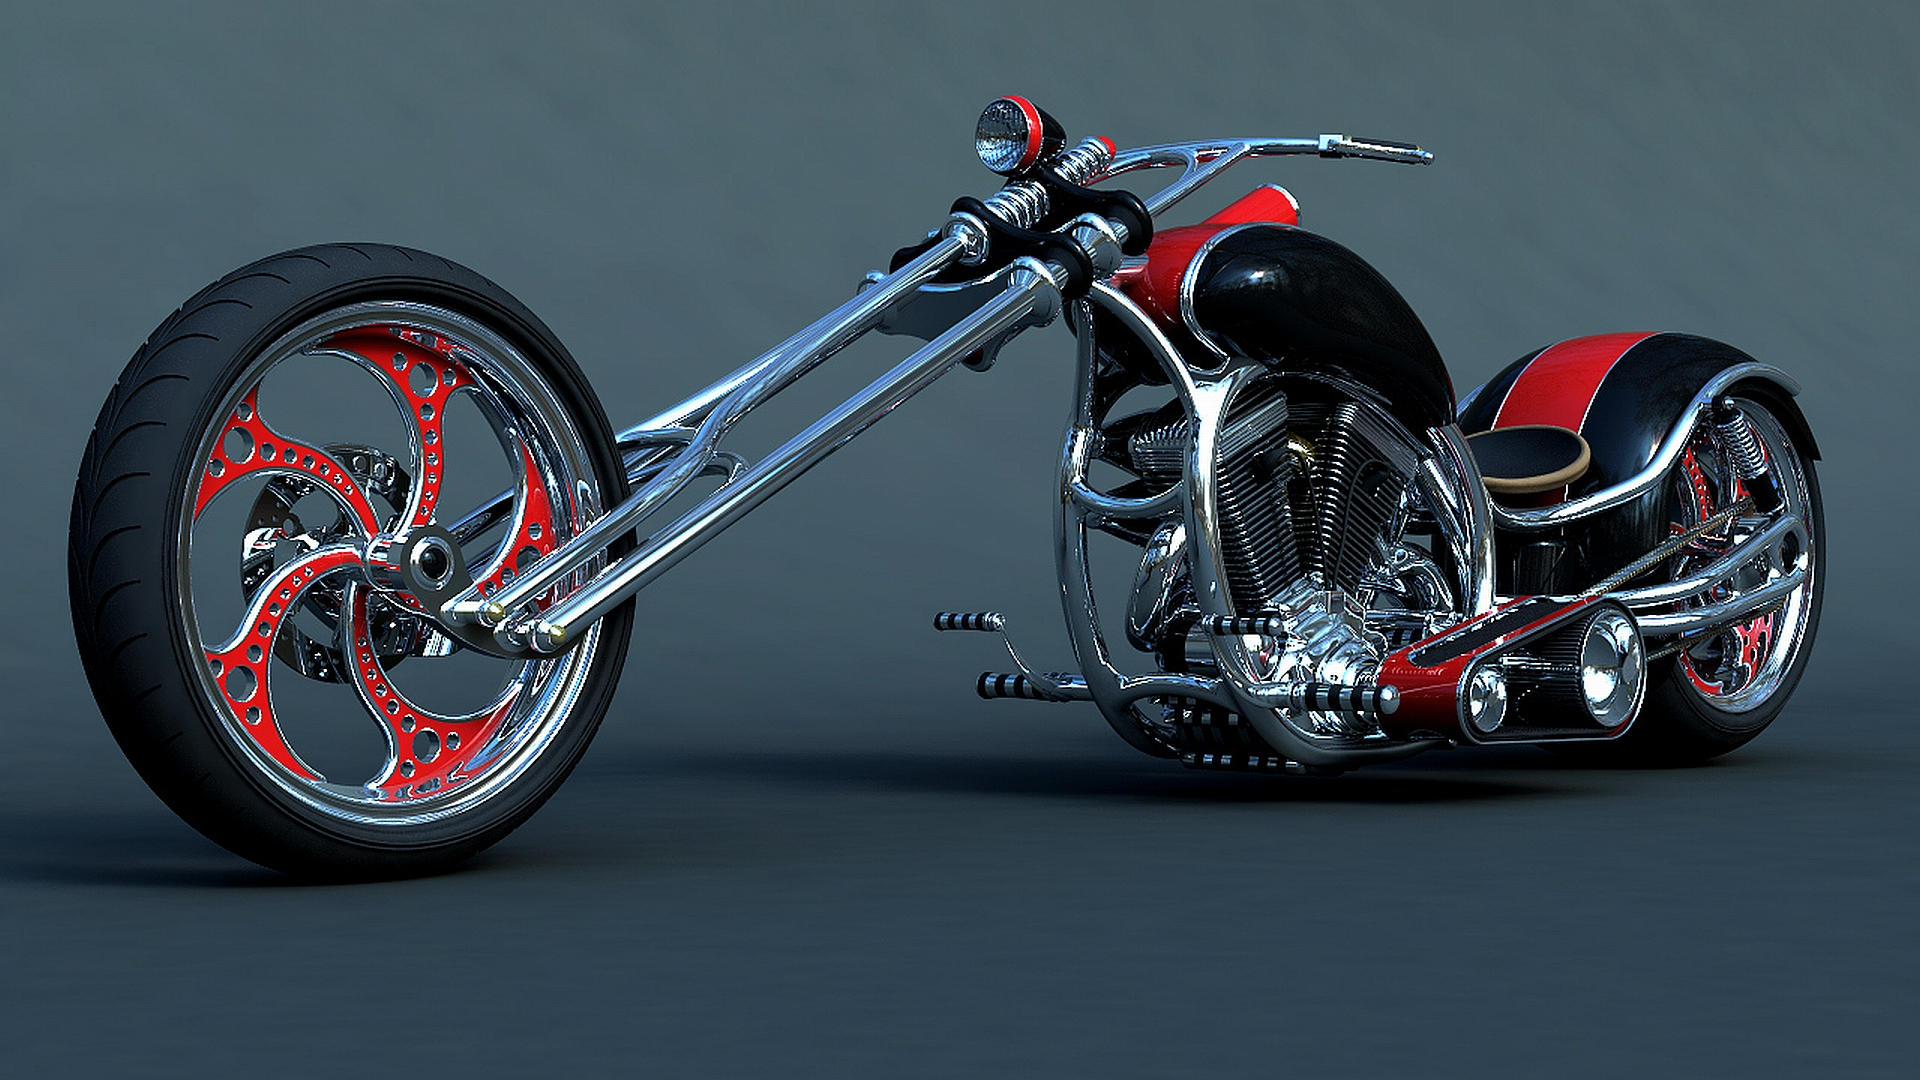 Choppers Bike Chopper Motos Custom Wallpaper Moto Bikes Ttsn